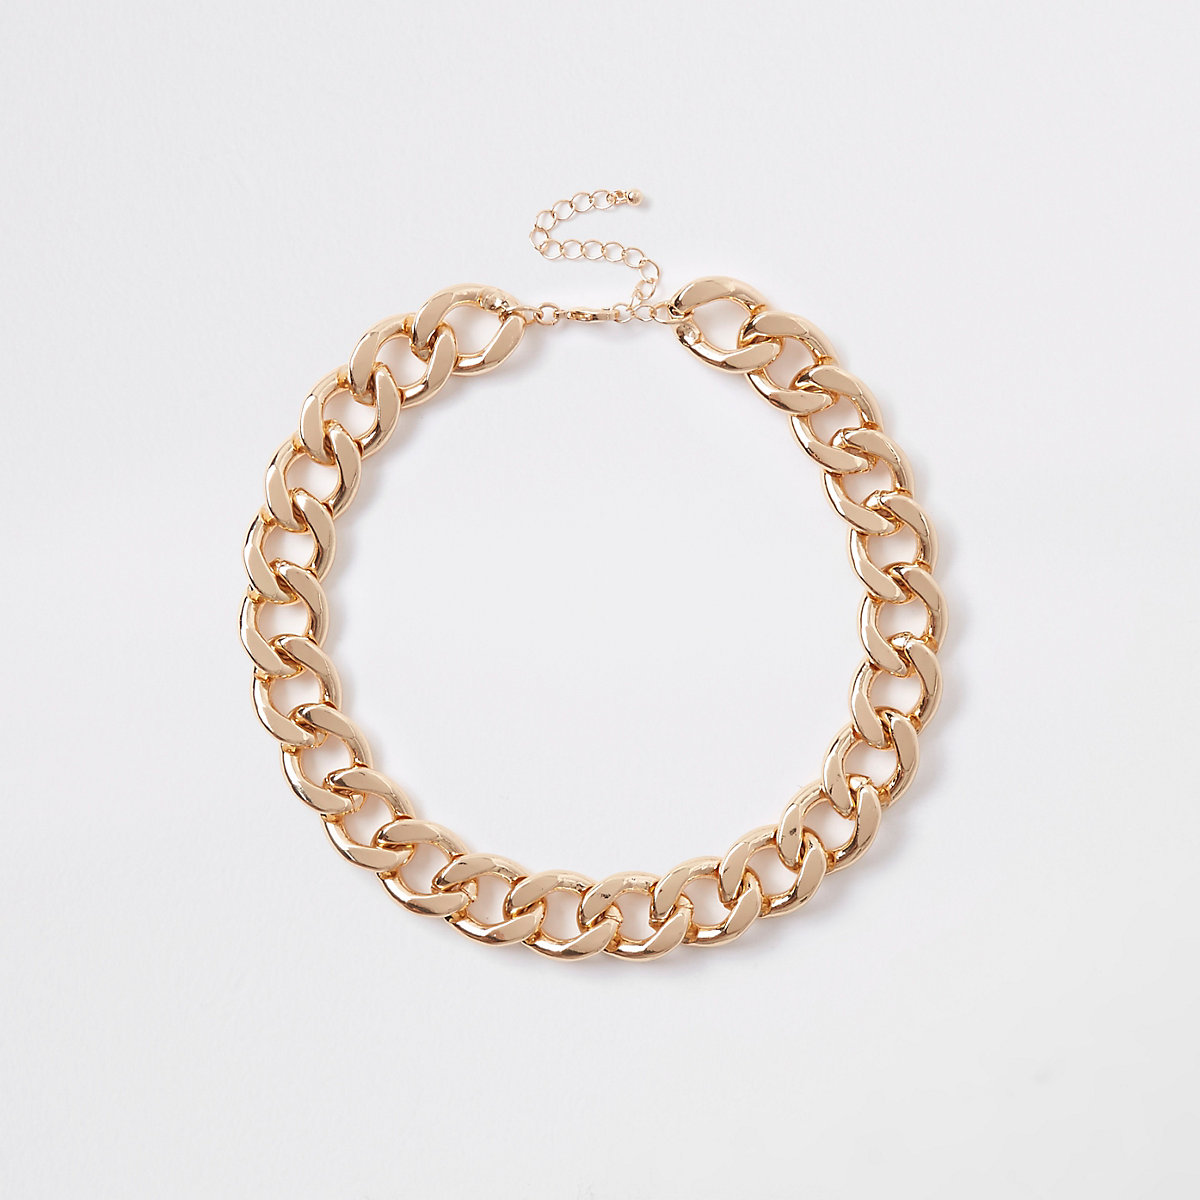 Gold tone chunky chain necklace